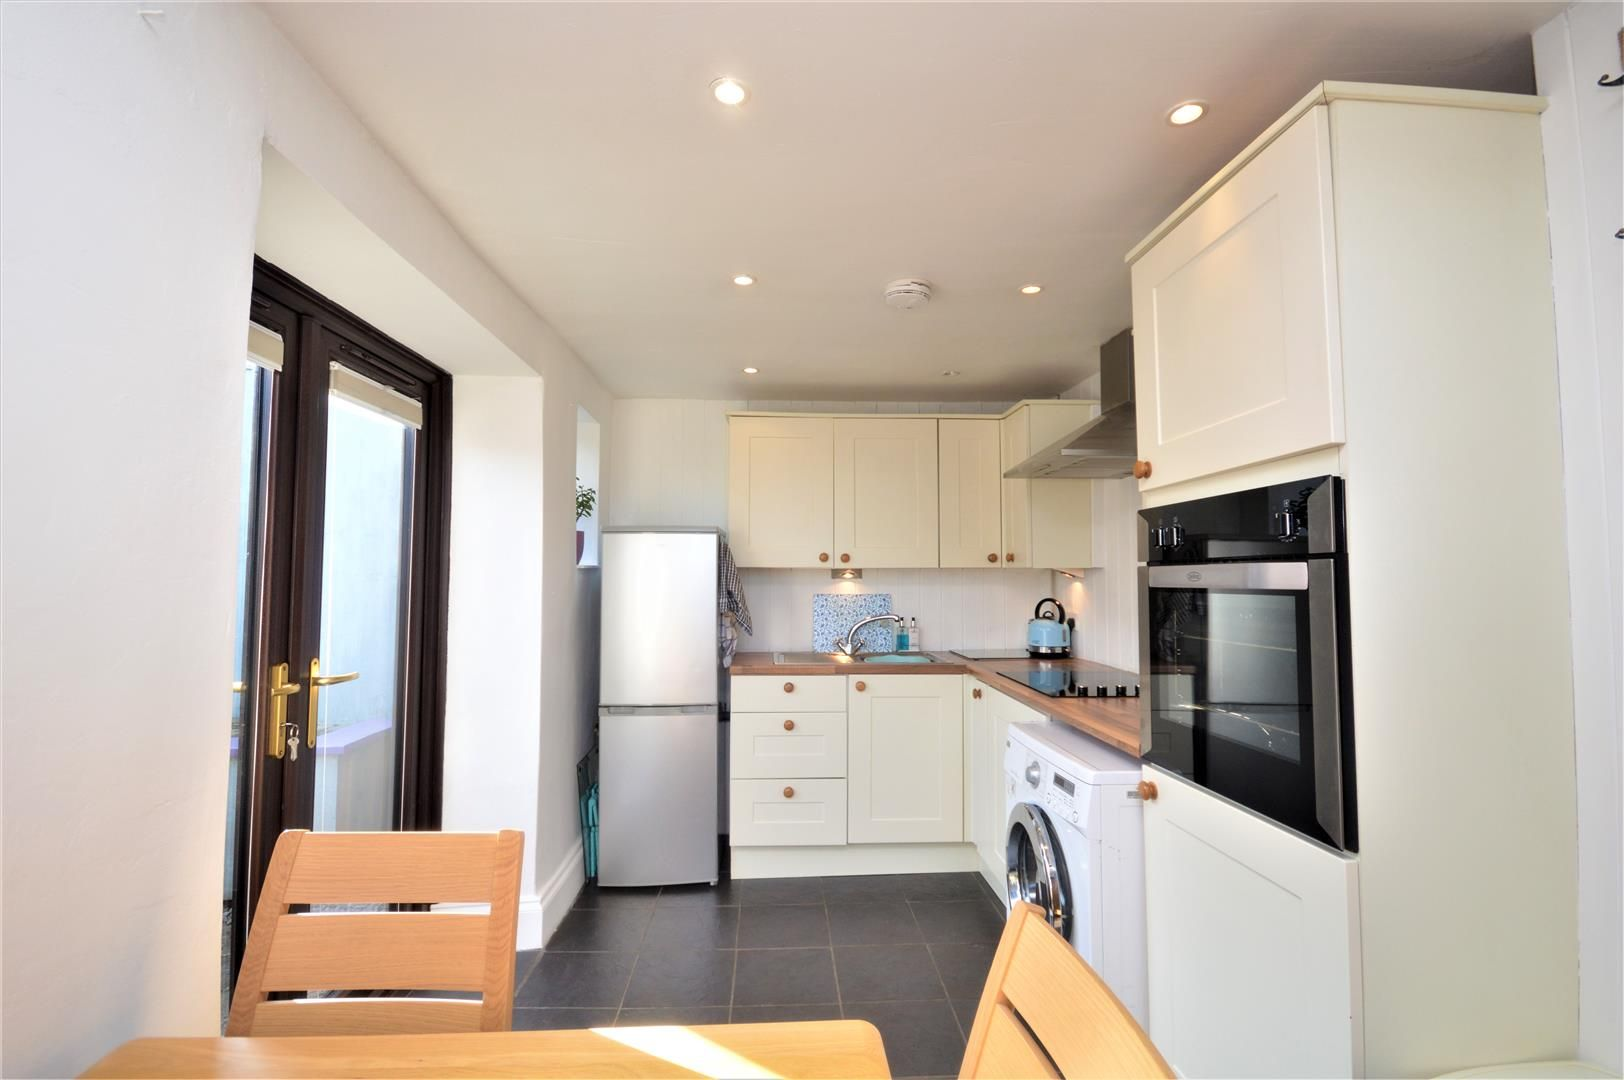 1 bed end-of-terrace for sale in Callow 6